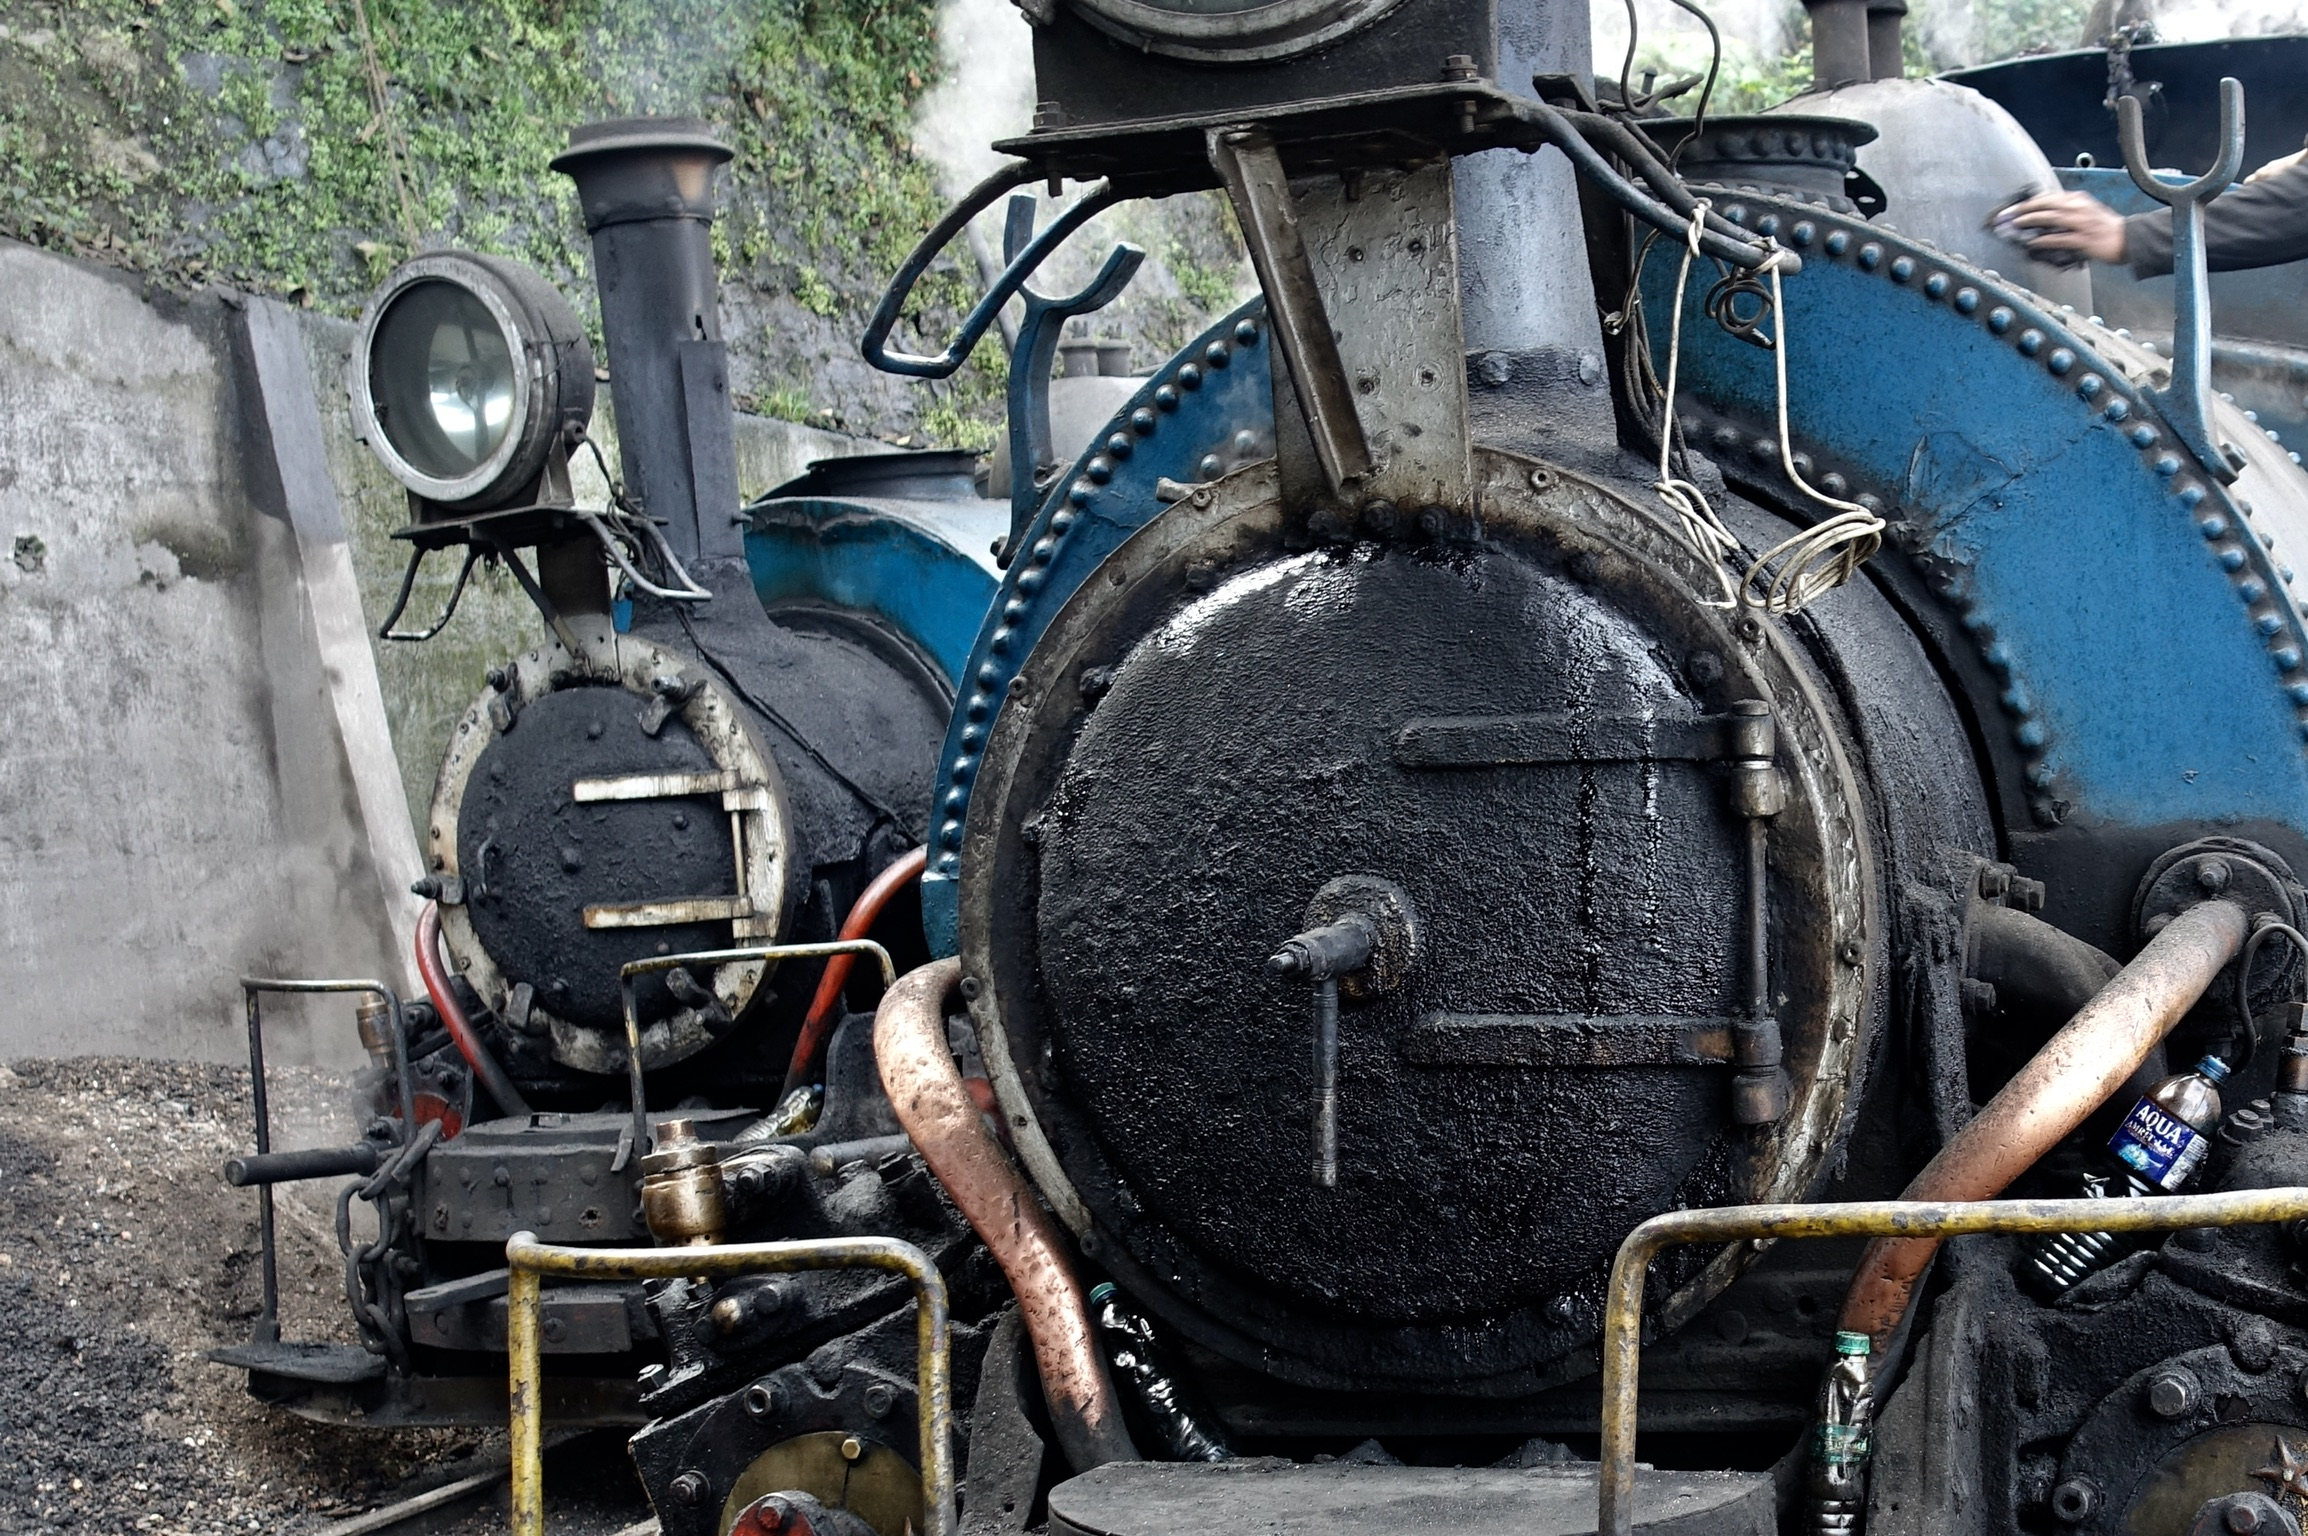 Famous DHR, Darjeerling Himalayan Railway, completed in 1881 to transport rice at a more competitive price to the, at this time, remote area